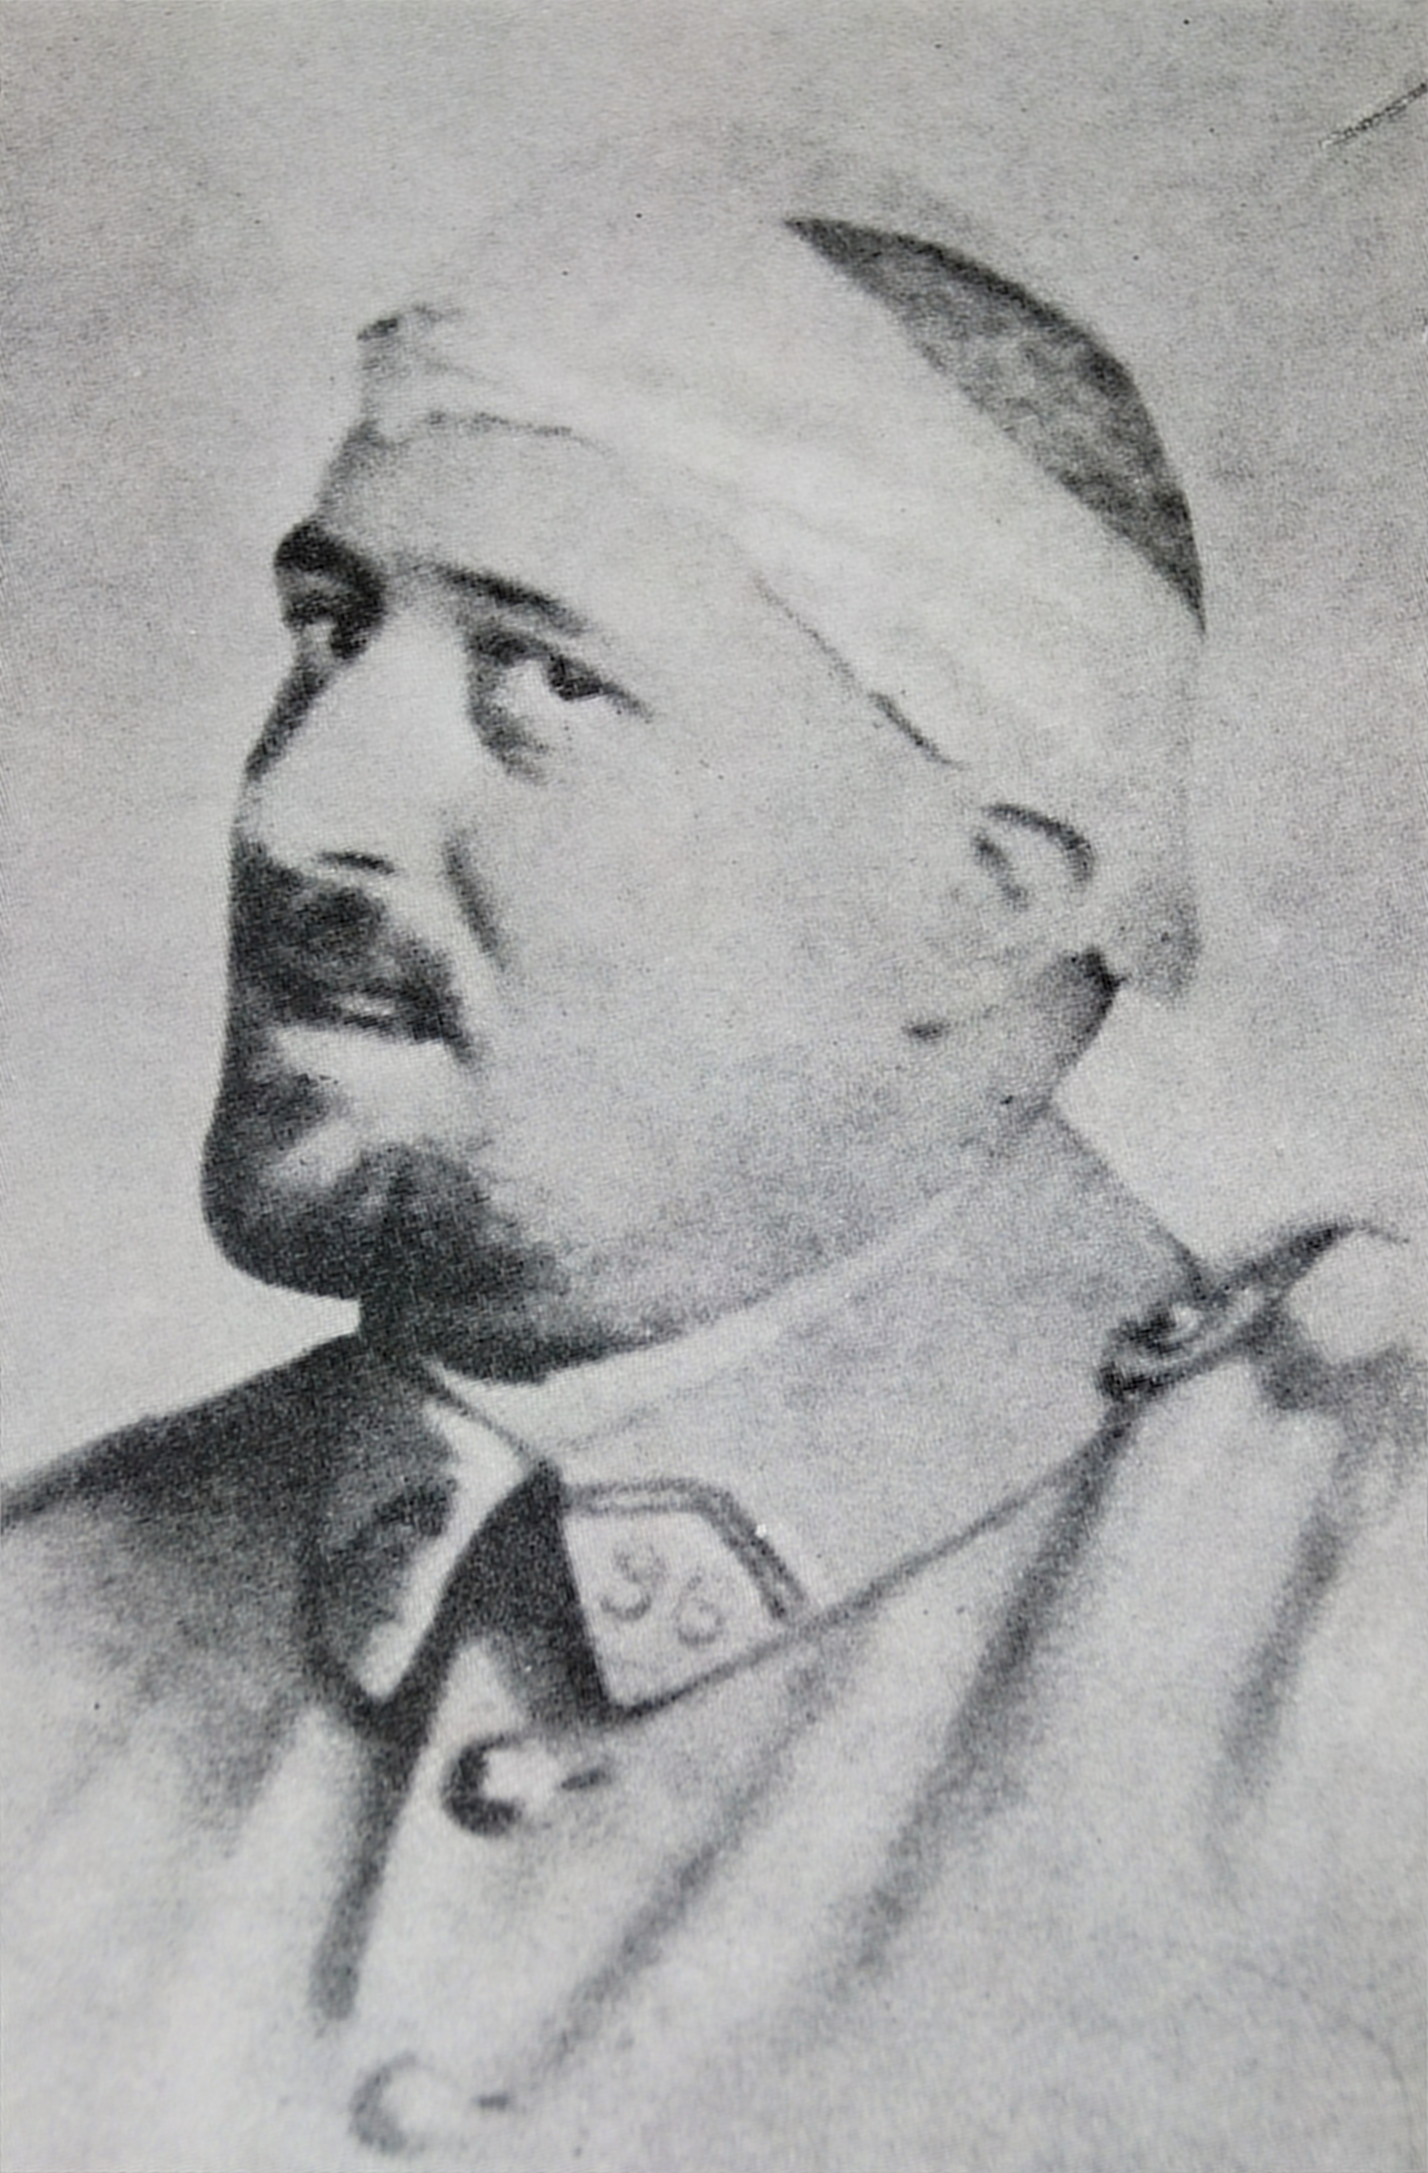 Photograph of Guillaume Apollinaire in spring 1916 after his shrapnel wound to the temple